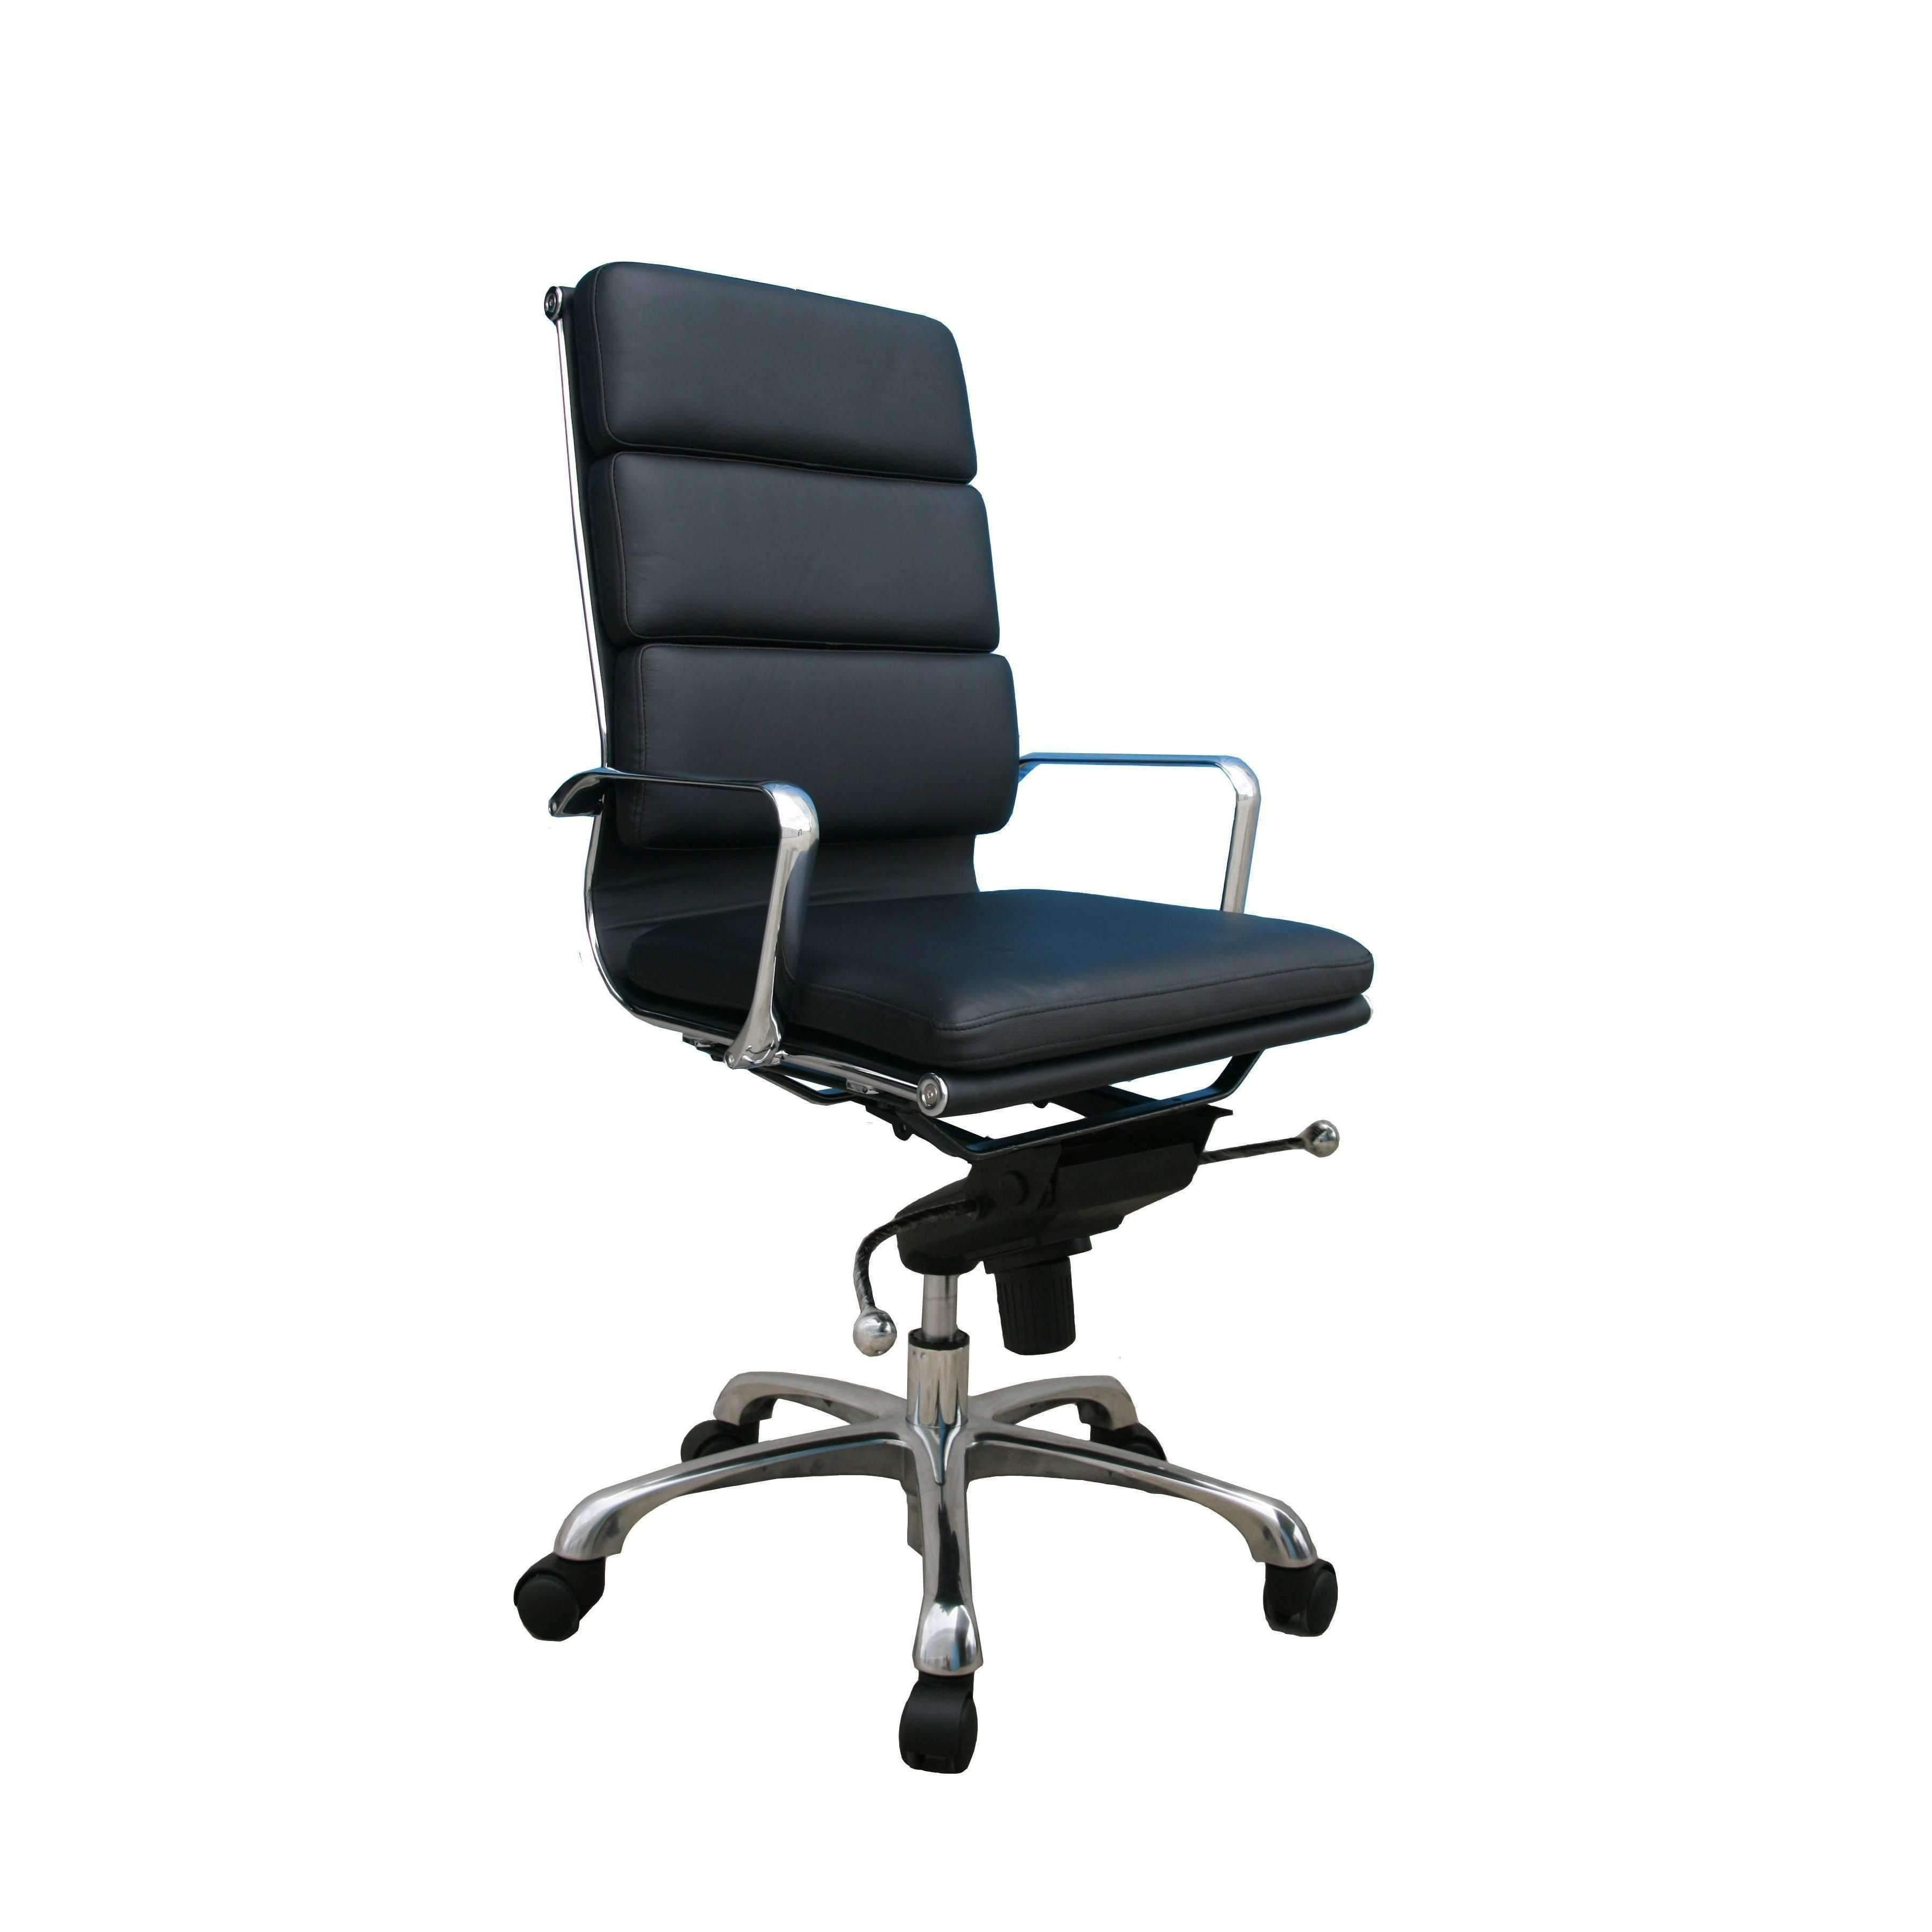 Plush Black High Back Office Chair By J&M (With images